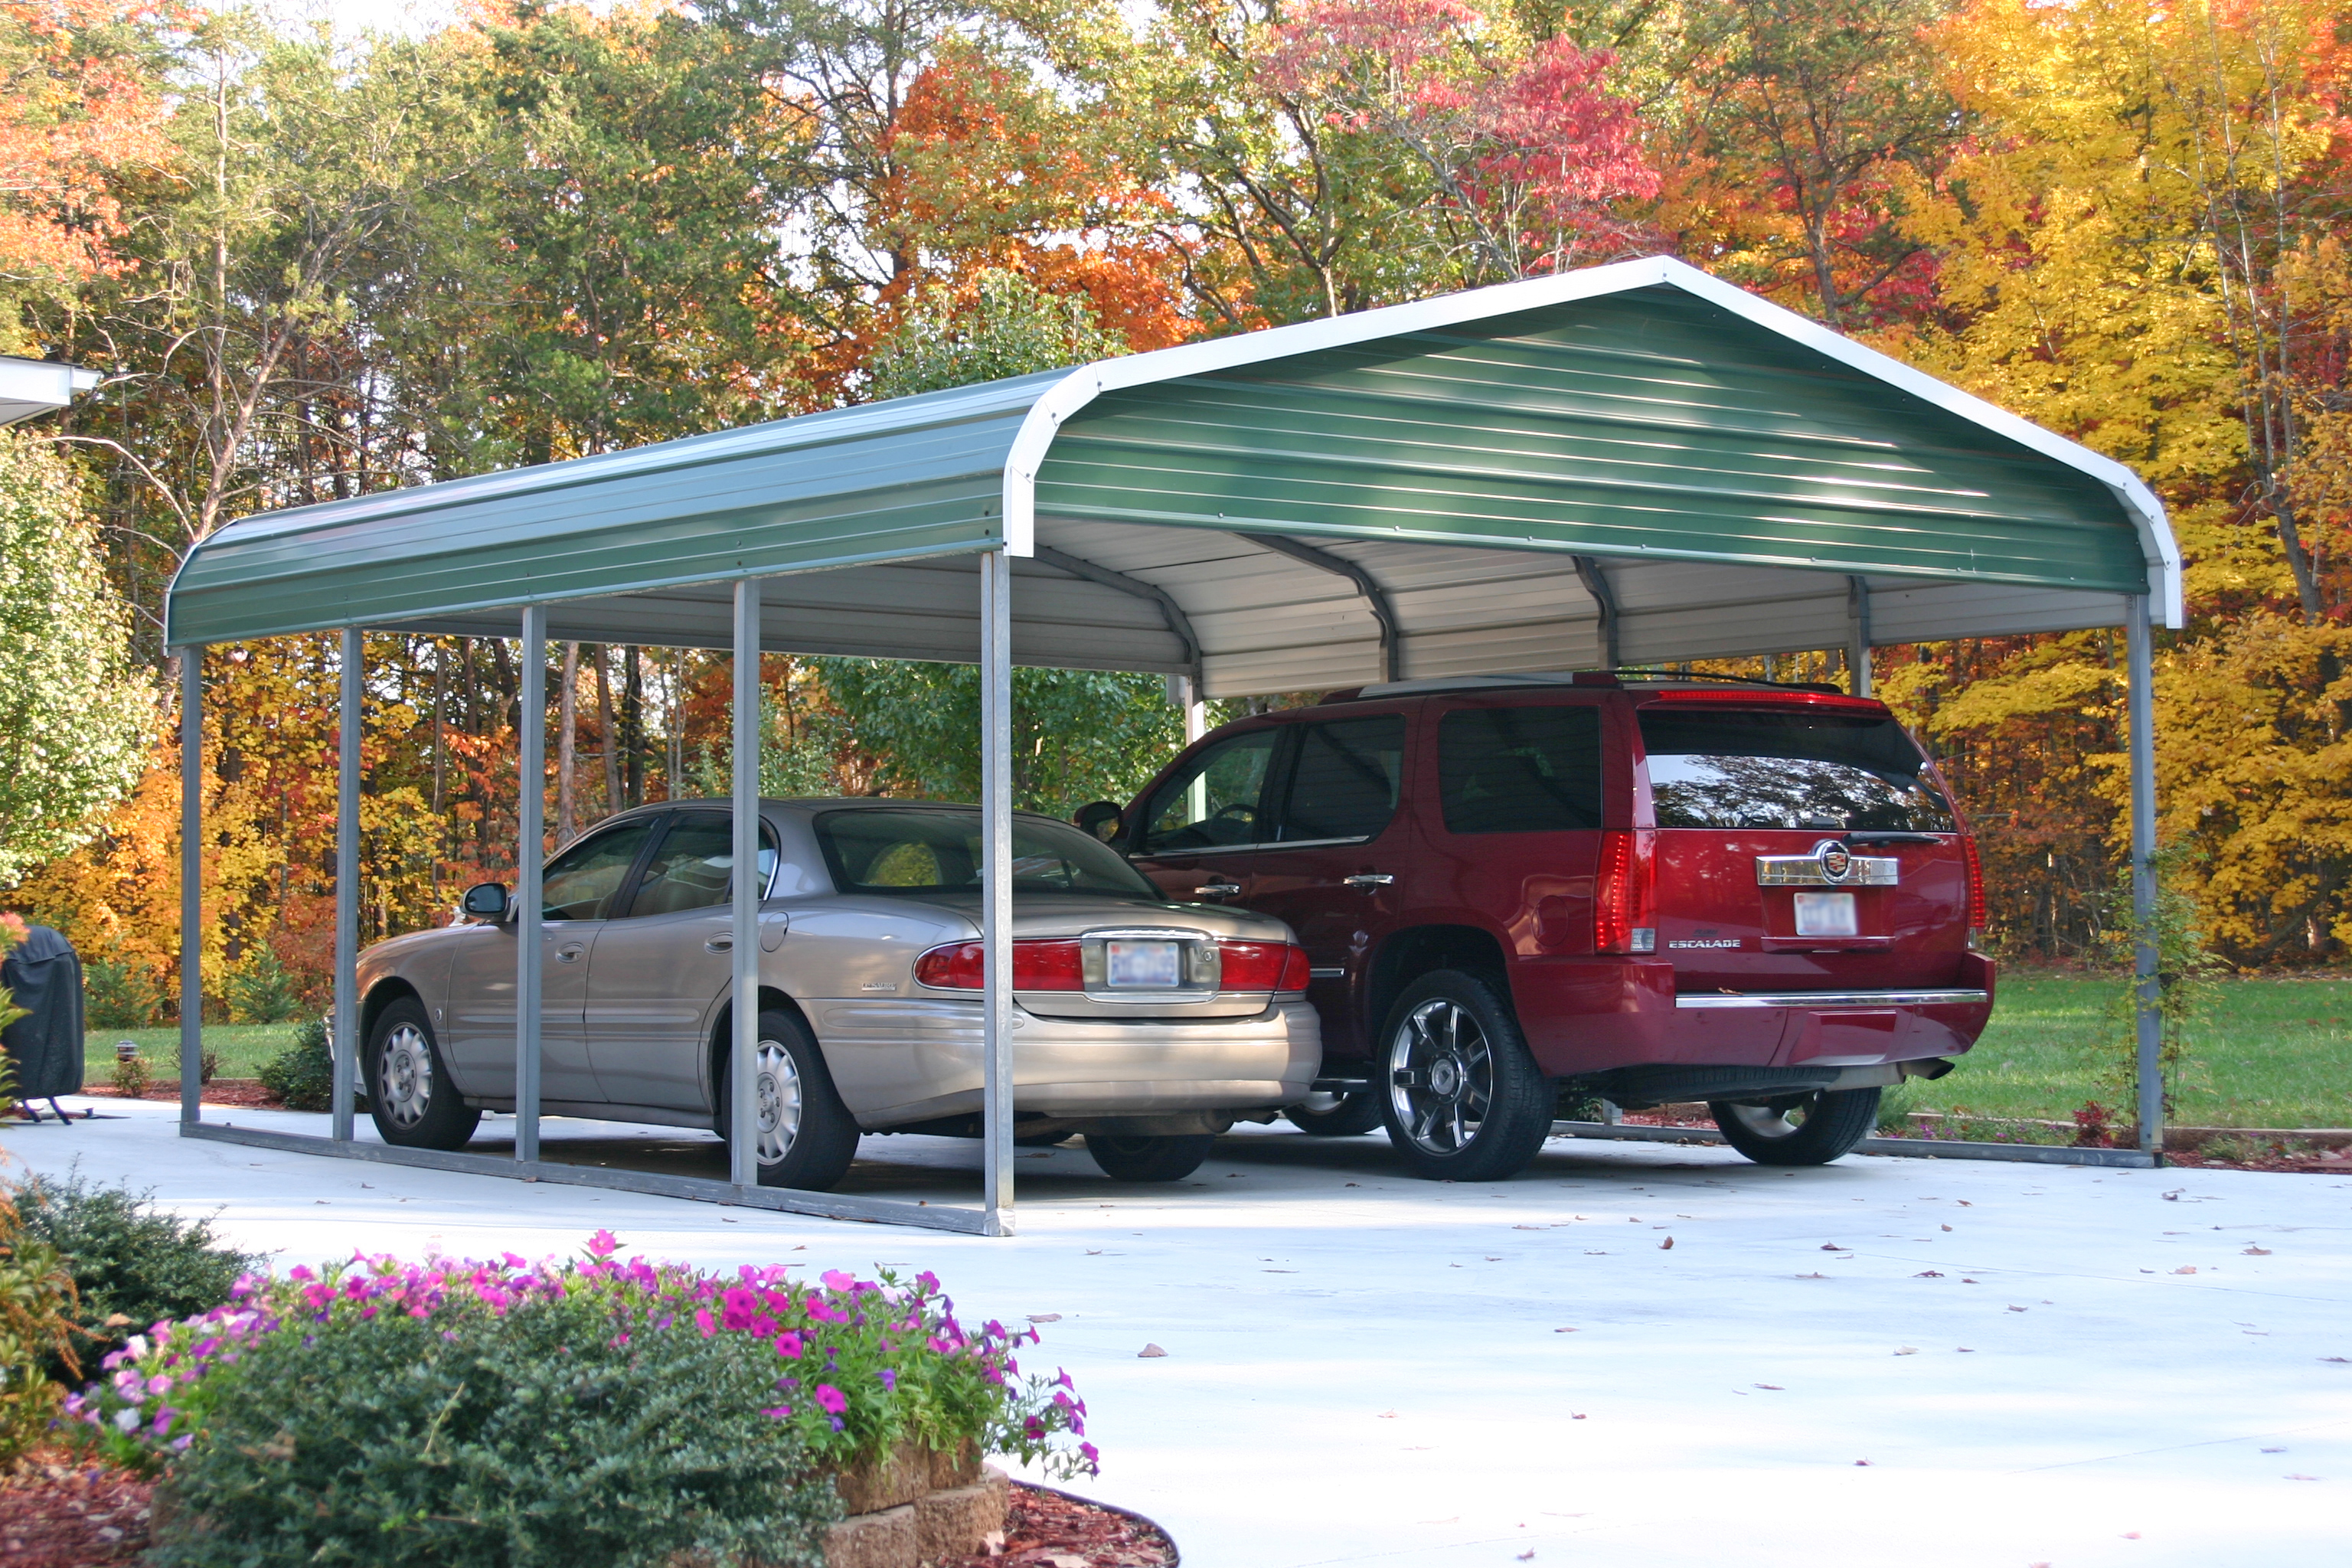 Car Port. carport carolina metal carports. steel carport kits metal on back yard ponds, back yard shed plans, back yard courtyard ideas, back yard storage ideas, back yard corner lot ideas, back yard lounge ideas, back yard decks ideas, back yard bbq ideas, back yard hot tub ideas, back yard fountain ideas, back yard pergola ideas, back yard garden ideas, back yard fence ideas, back yard compost bin ideas, back yard spa ideas, back yard inground swimming pool ideas,